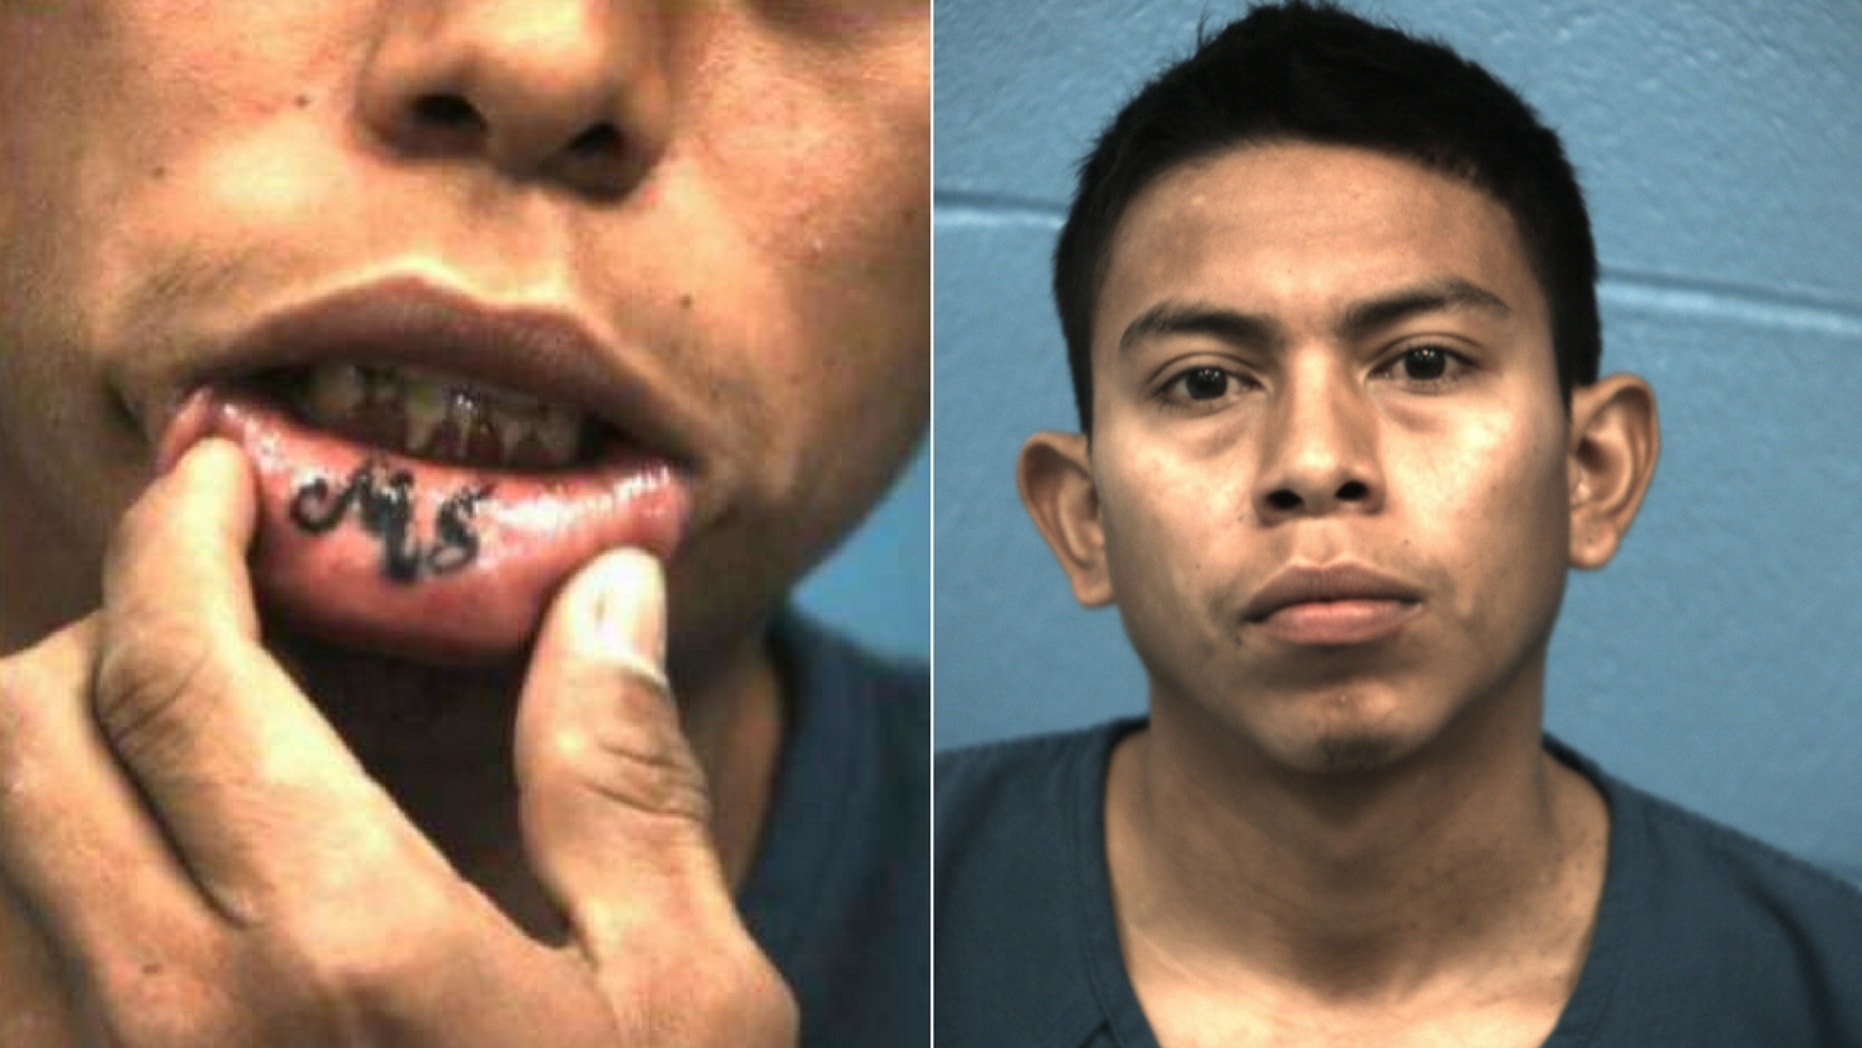 Jorge Alexander Cortez was one of the three people accused of plotting to kill another MS-13 gang member earlier this month, police said.